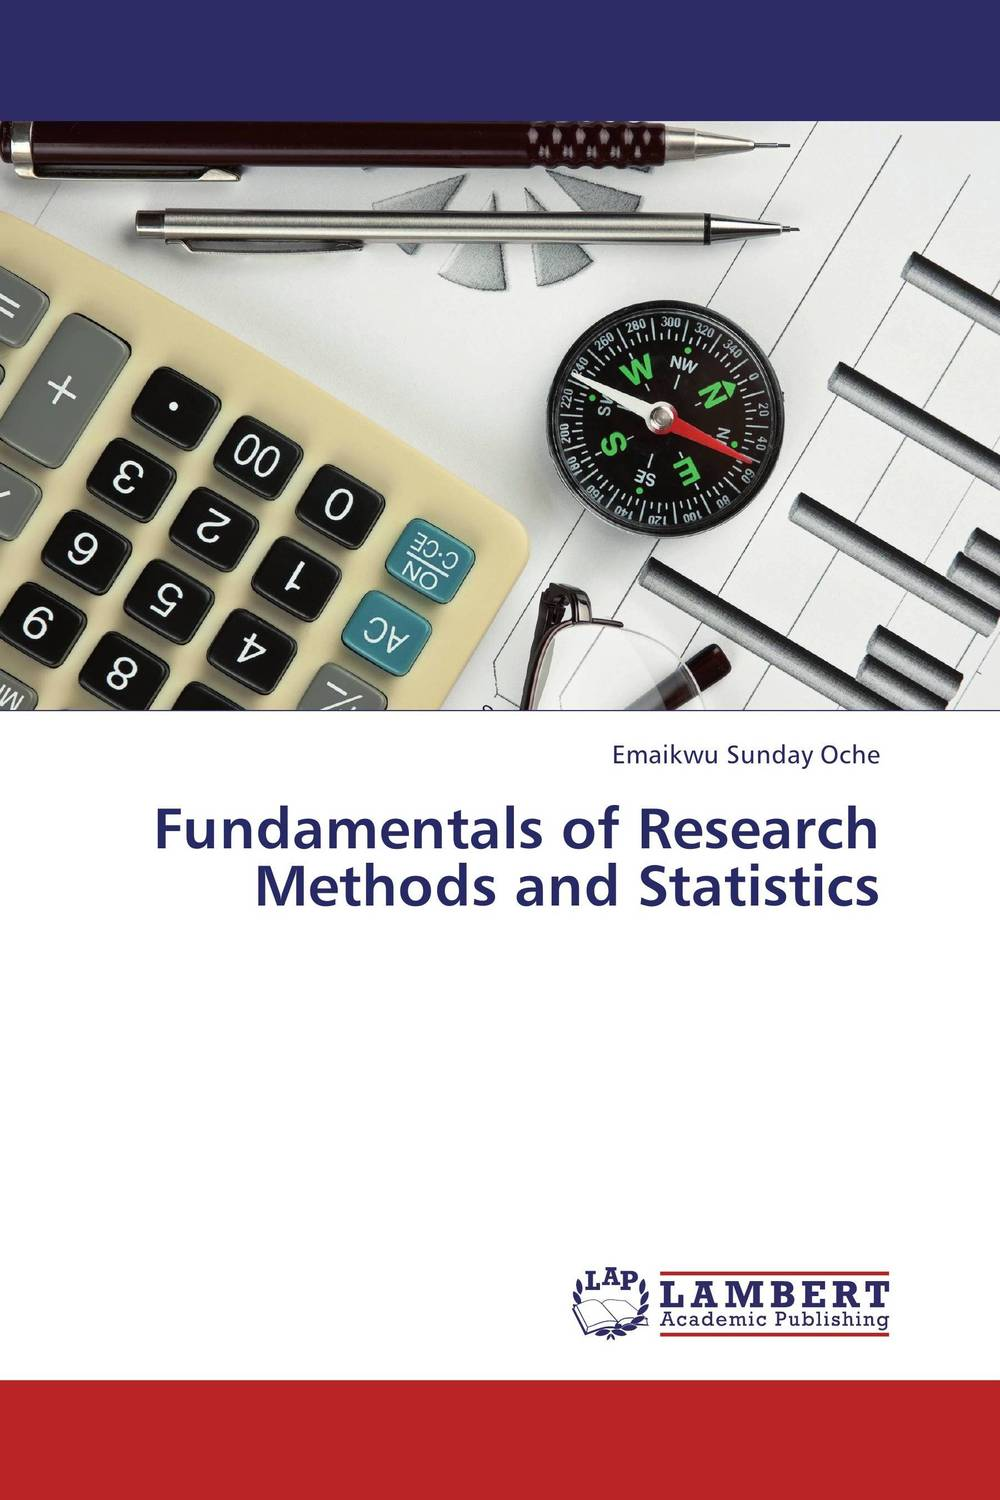 Fundamentals of Research Methods and Statistics fundamentals of research methods and statistics